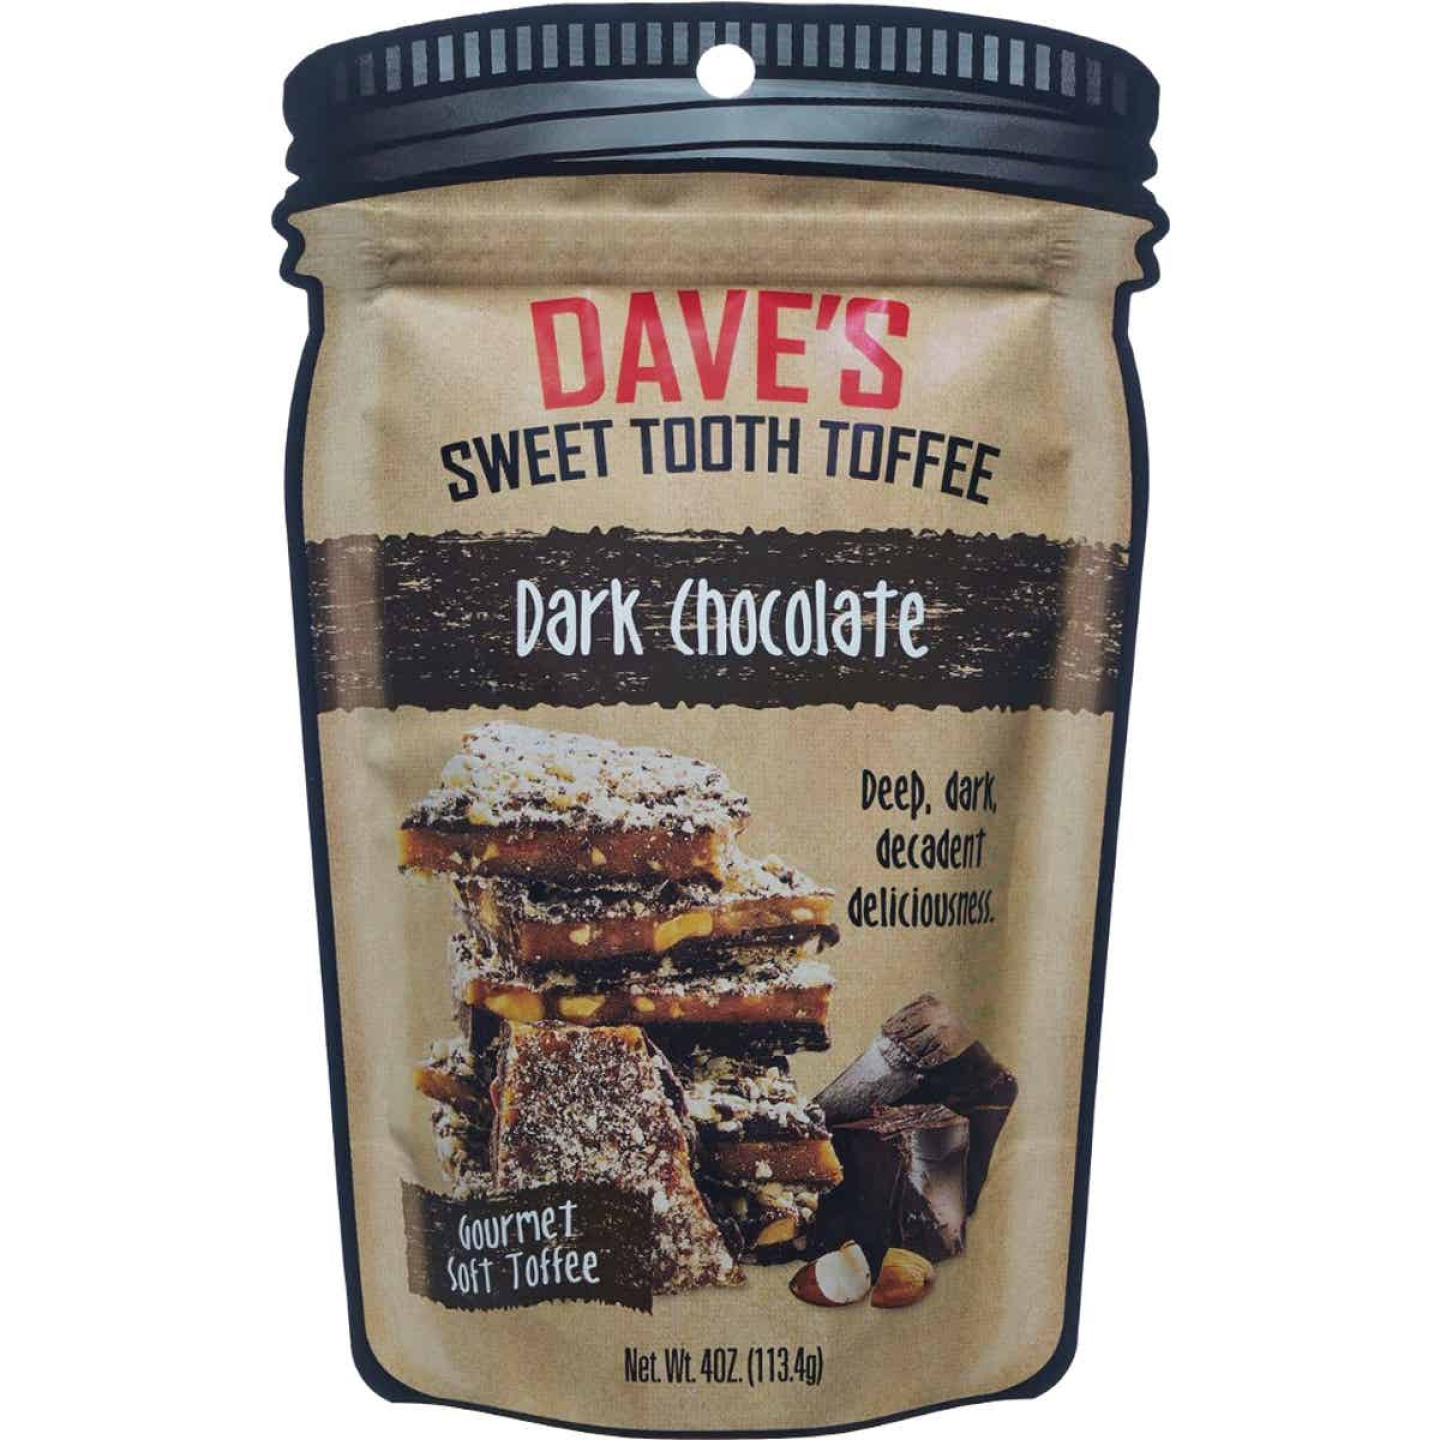 Dave's Sweet Tooth 4 Oz. Dark Chocolate Gourmet Soft Toffee Image 1